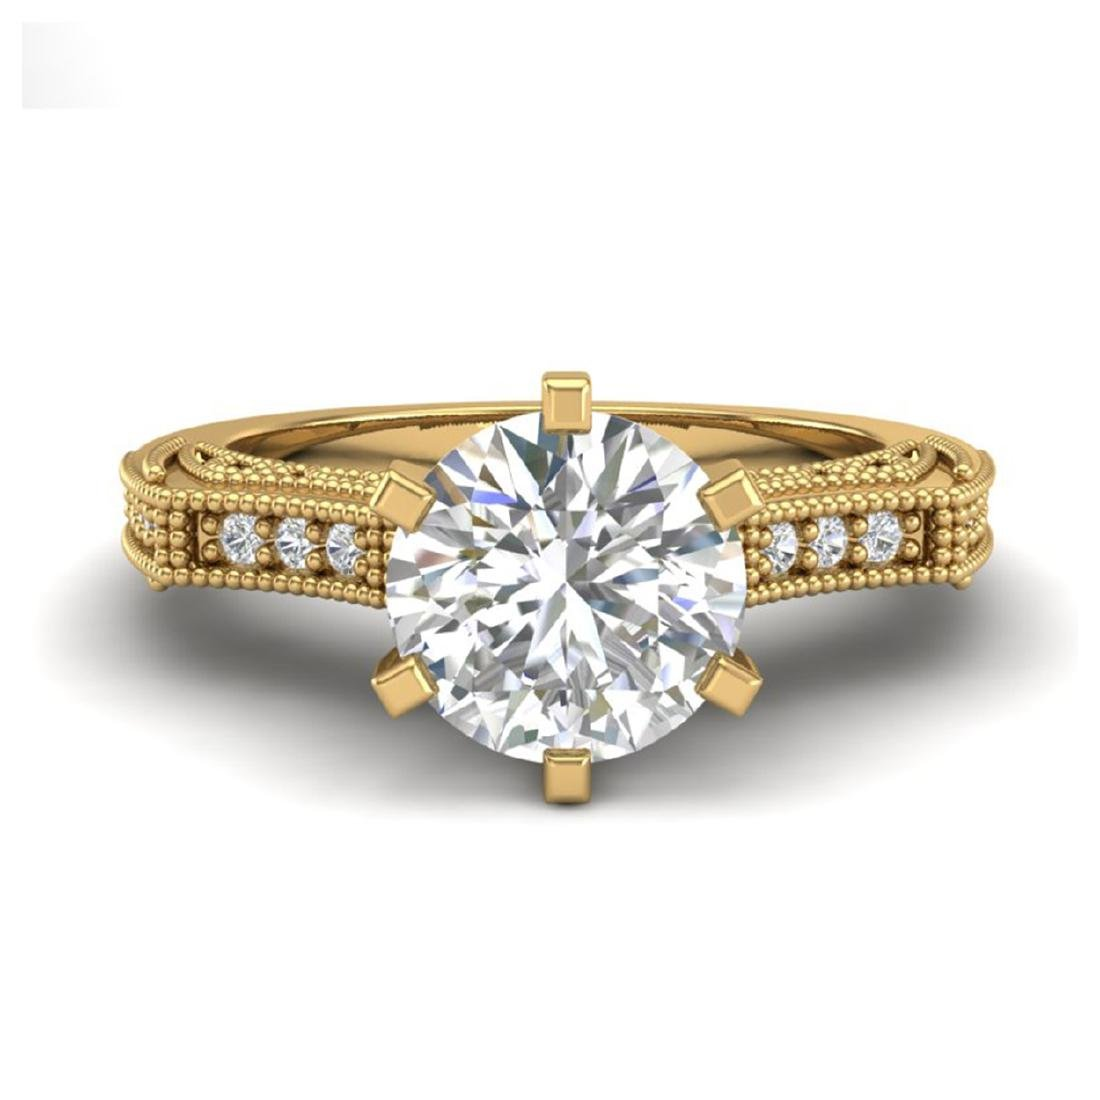 1.51 CTW VS/SI Diamond Solitaire Art Deco Ring 18K - 2